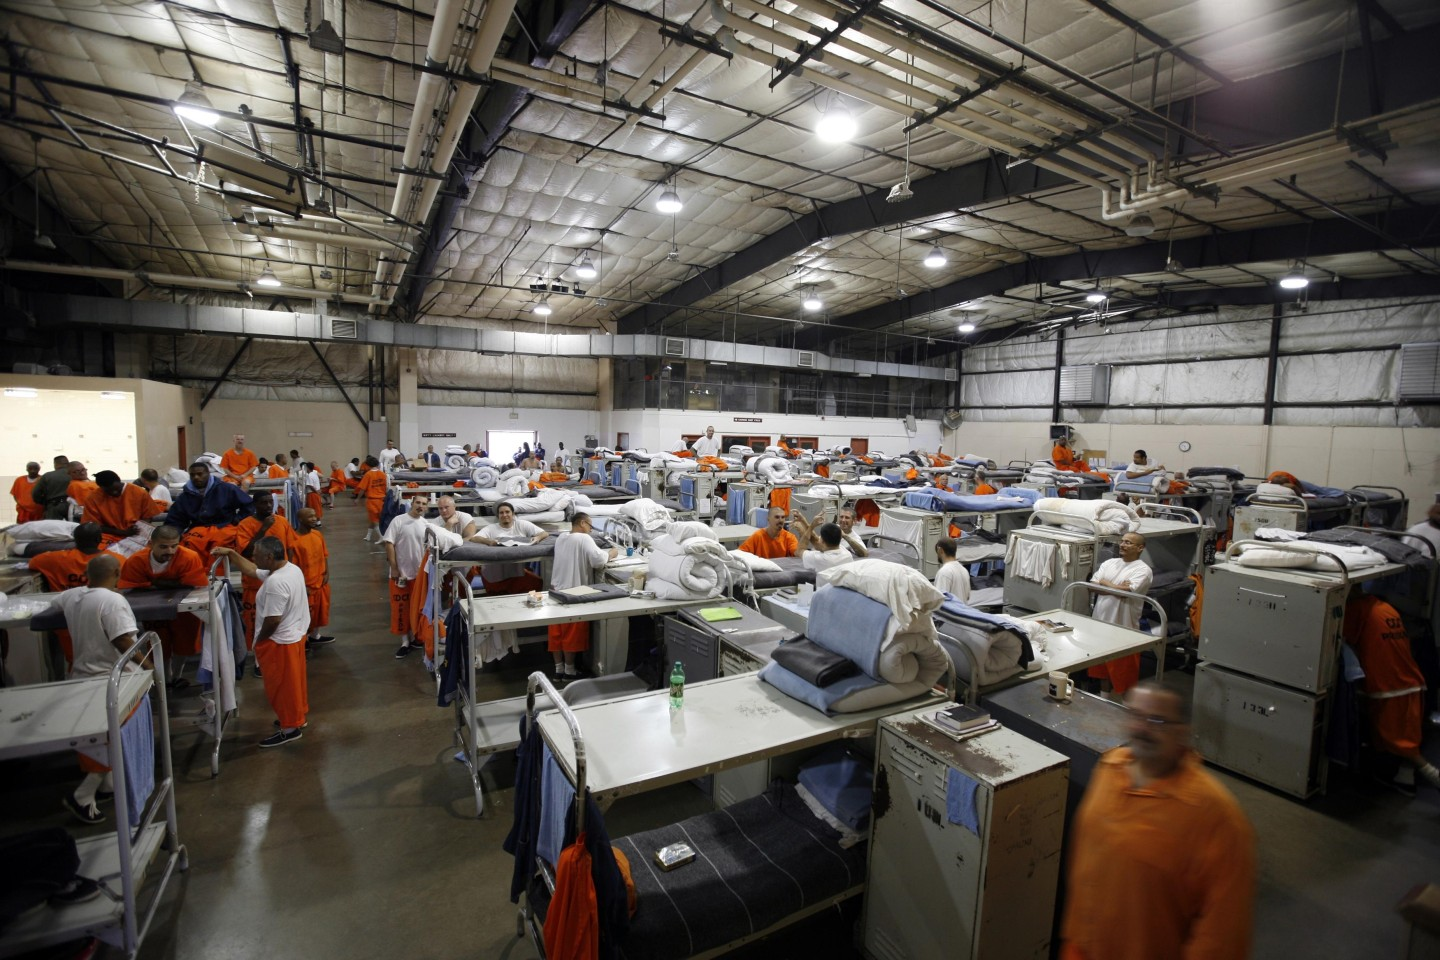 Packing the House: The Back Story on California's Prison Boom